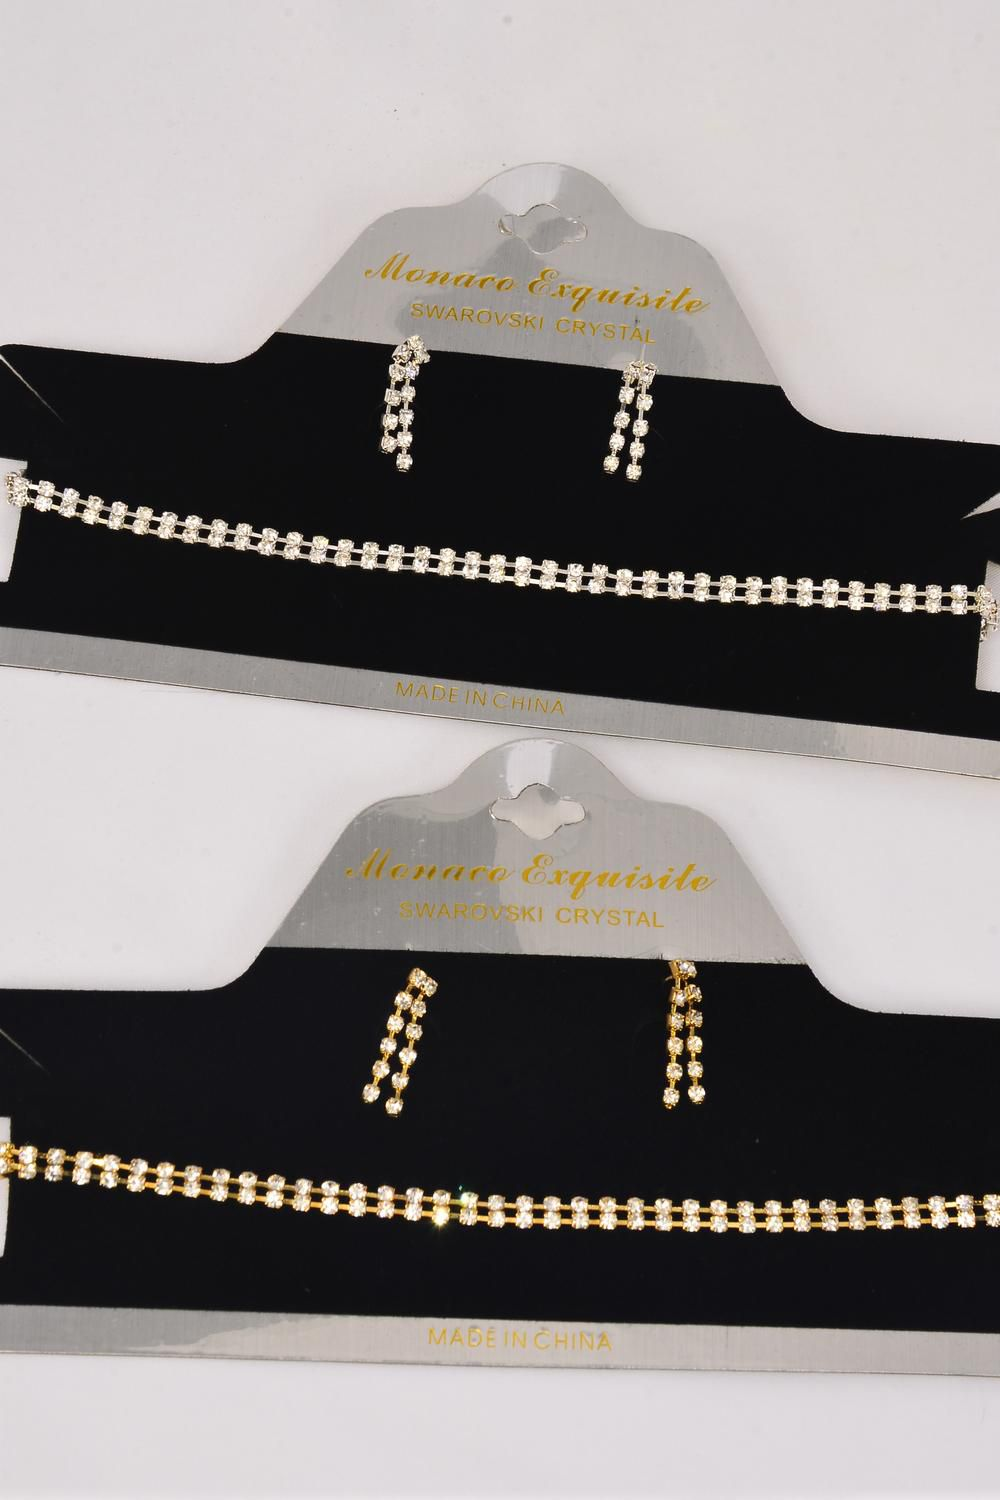 "Necklace Sets Choker Double Line Rhinestones/Sets **Post** Size-13.5"" W Extension Chain,Choose Gold Or Silver Finishes,Display Card & OPP bag & UPC Code -"